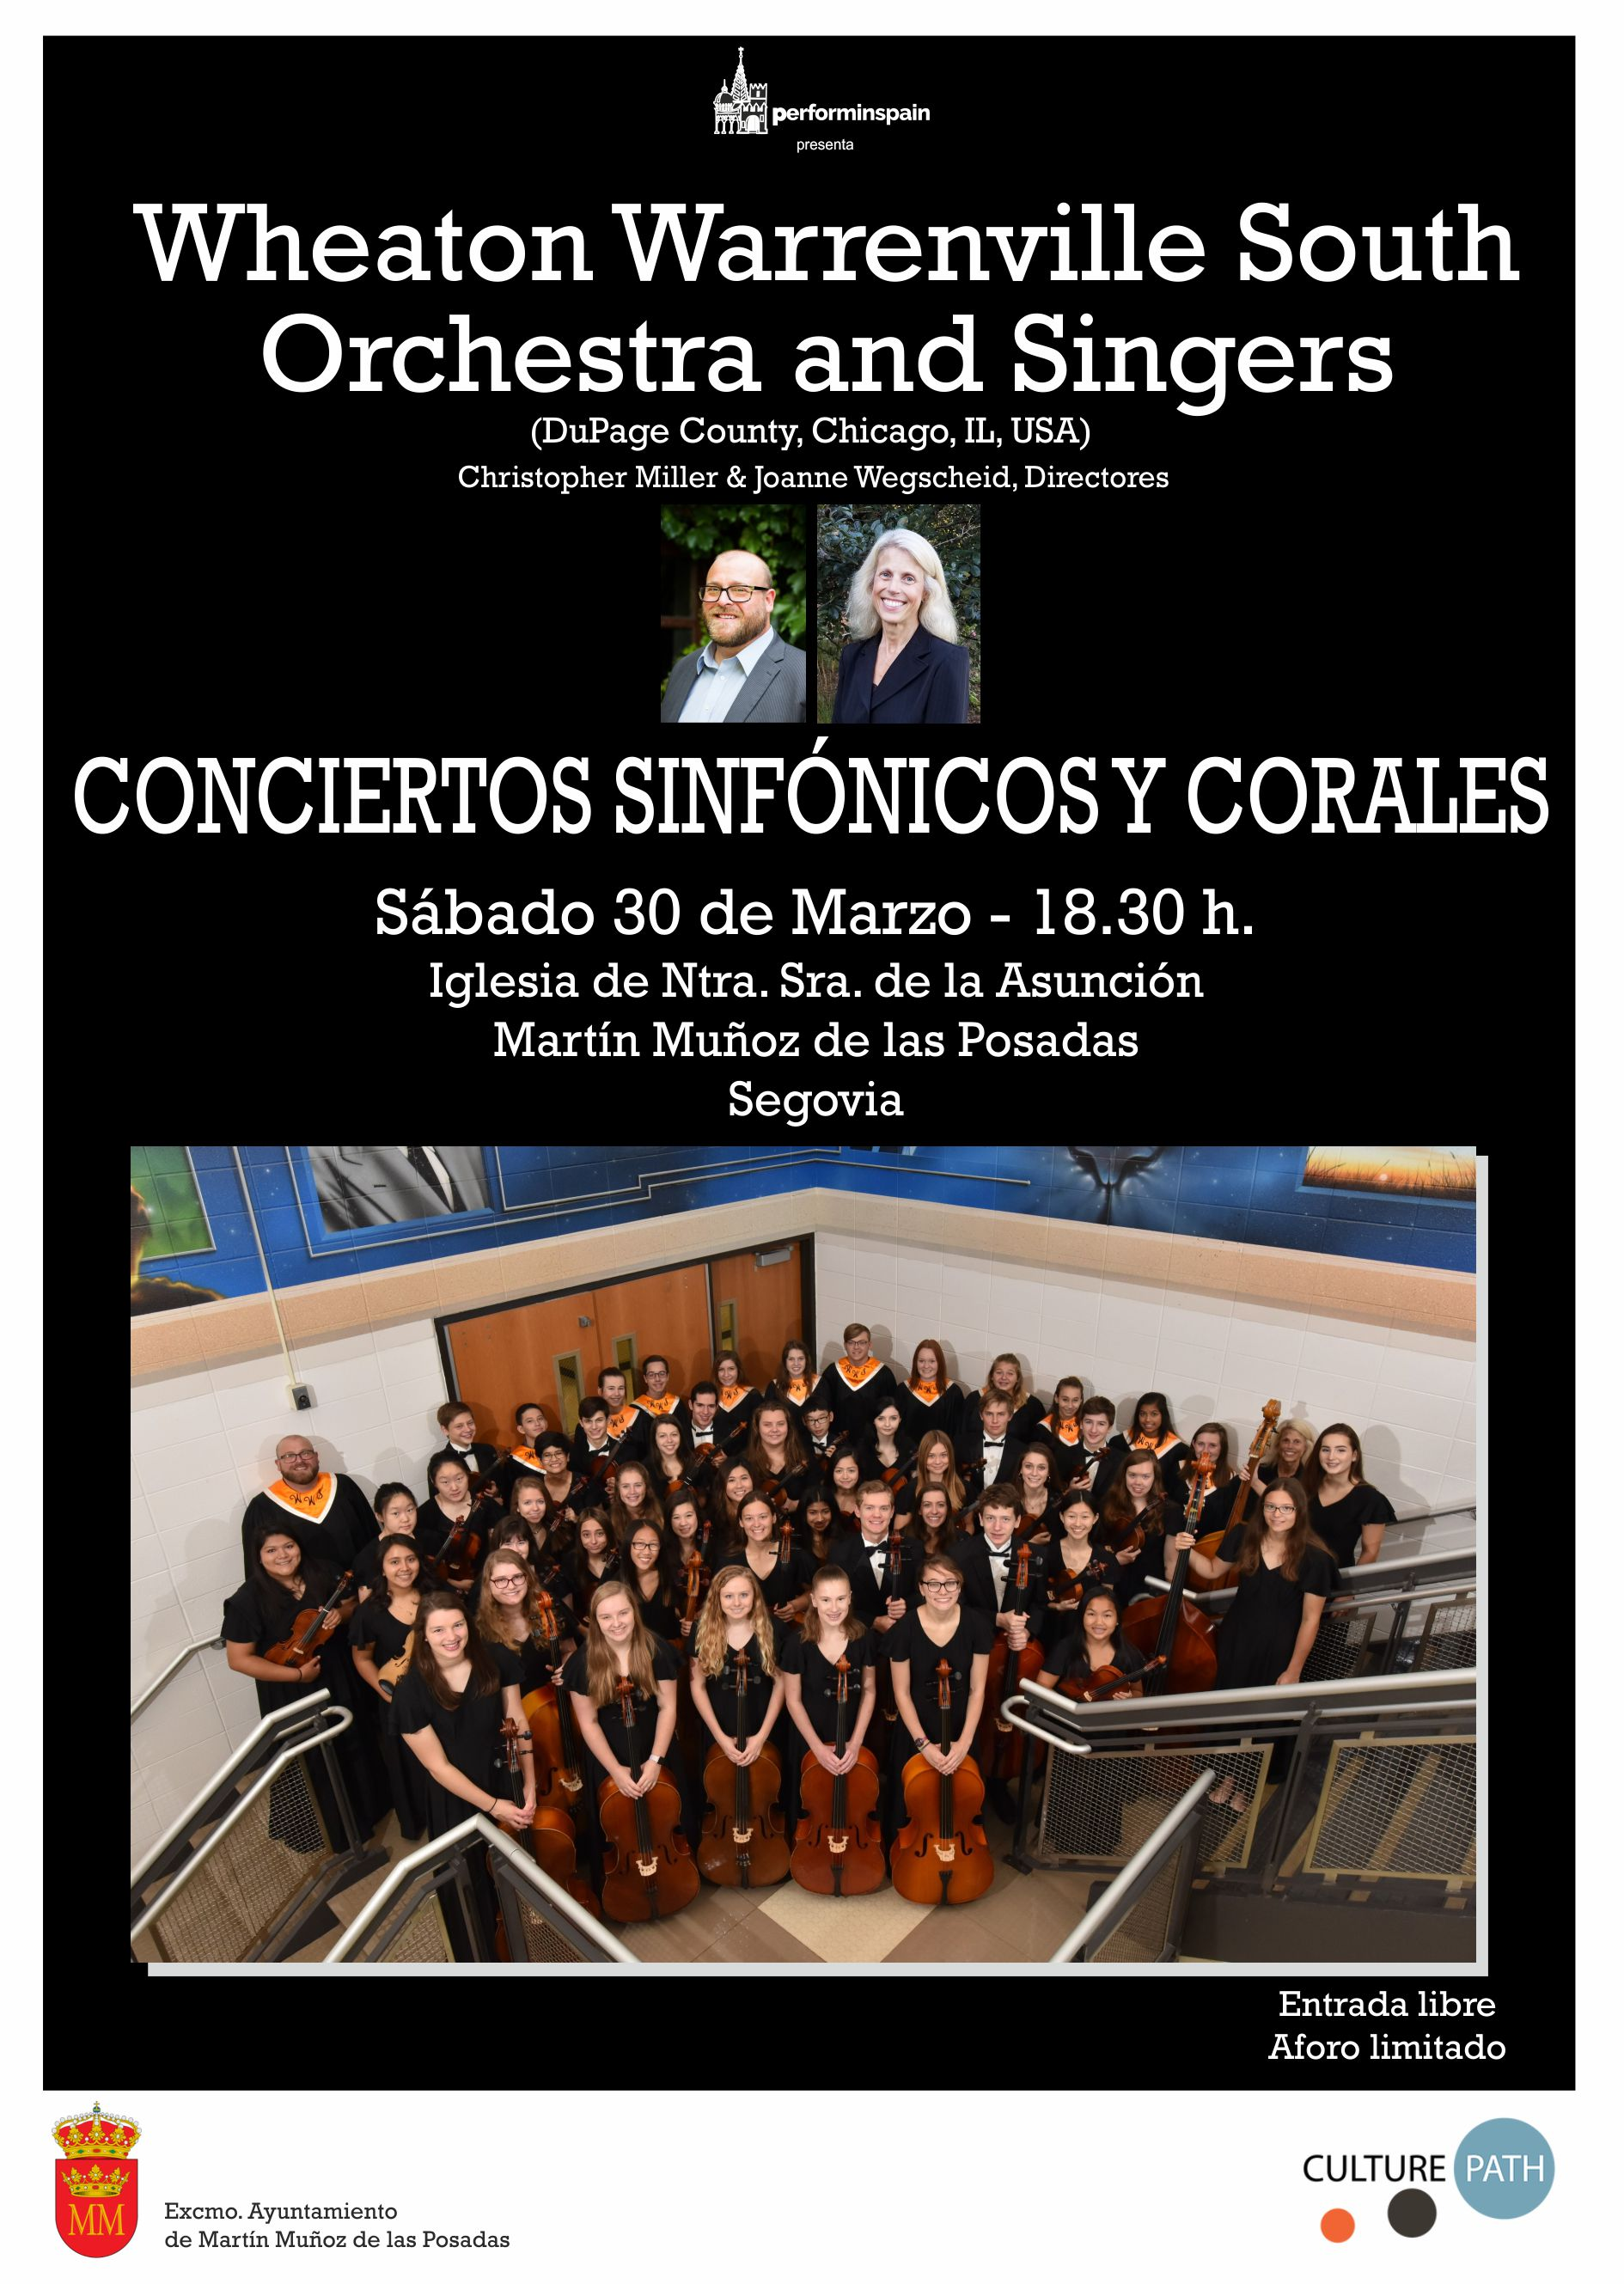 Symphonic and choral concert